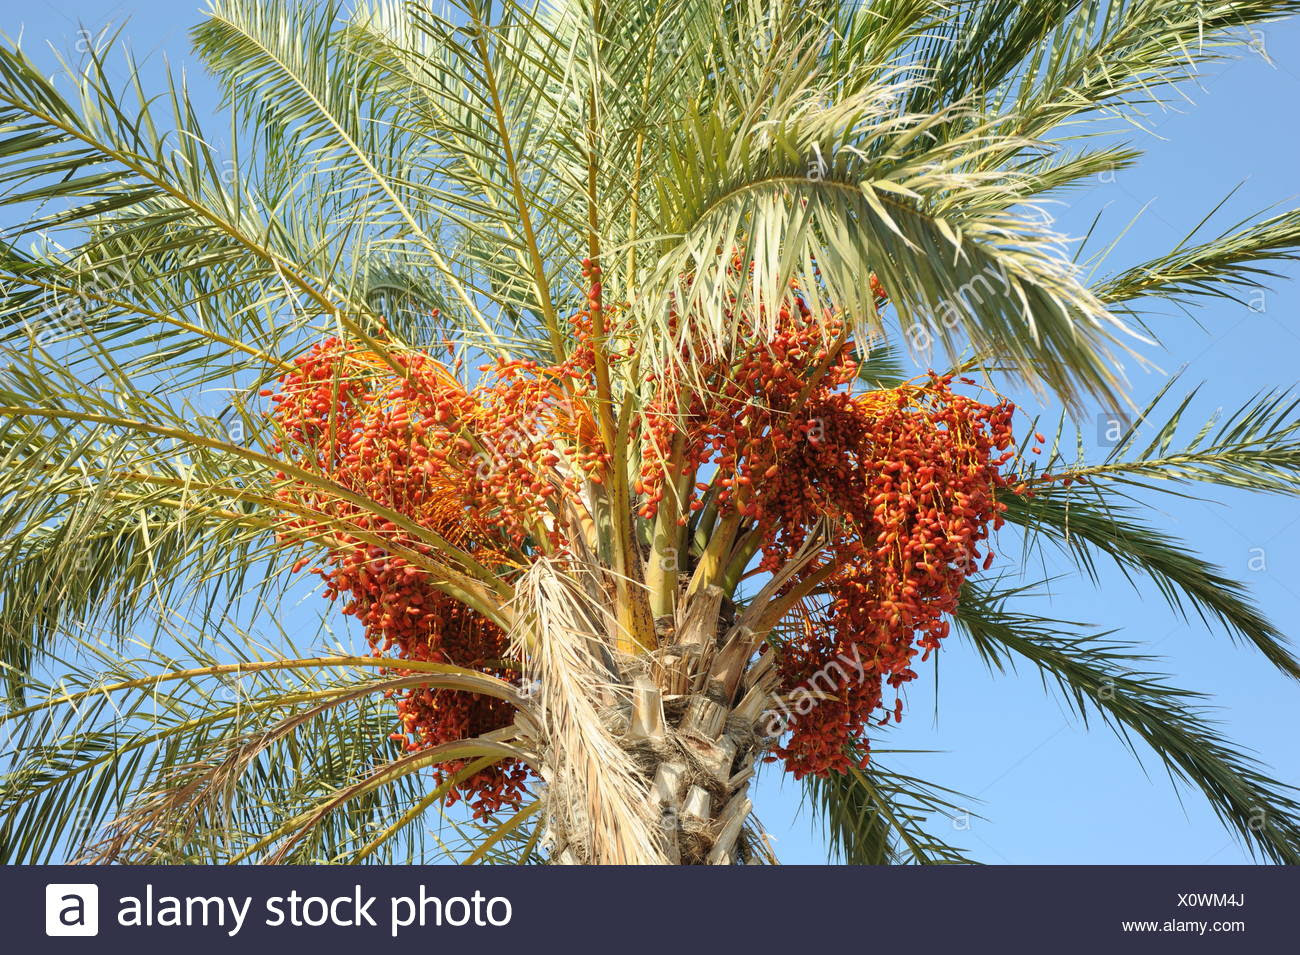 Tree Green Leaves Fruit Palm Tree Dates Date Palm Date Tree